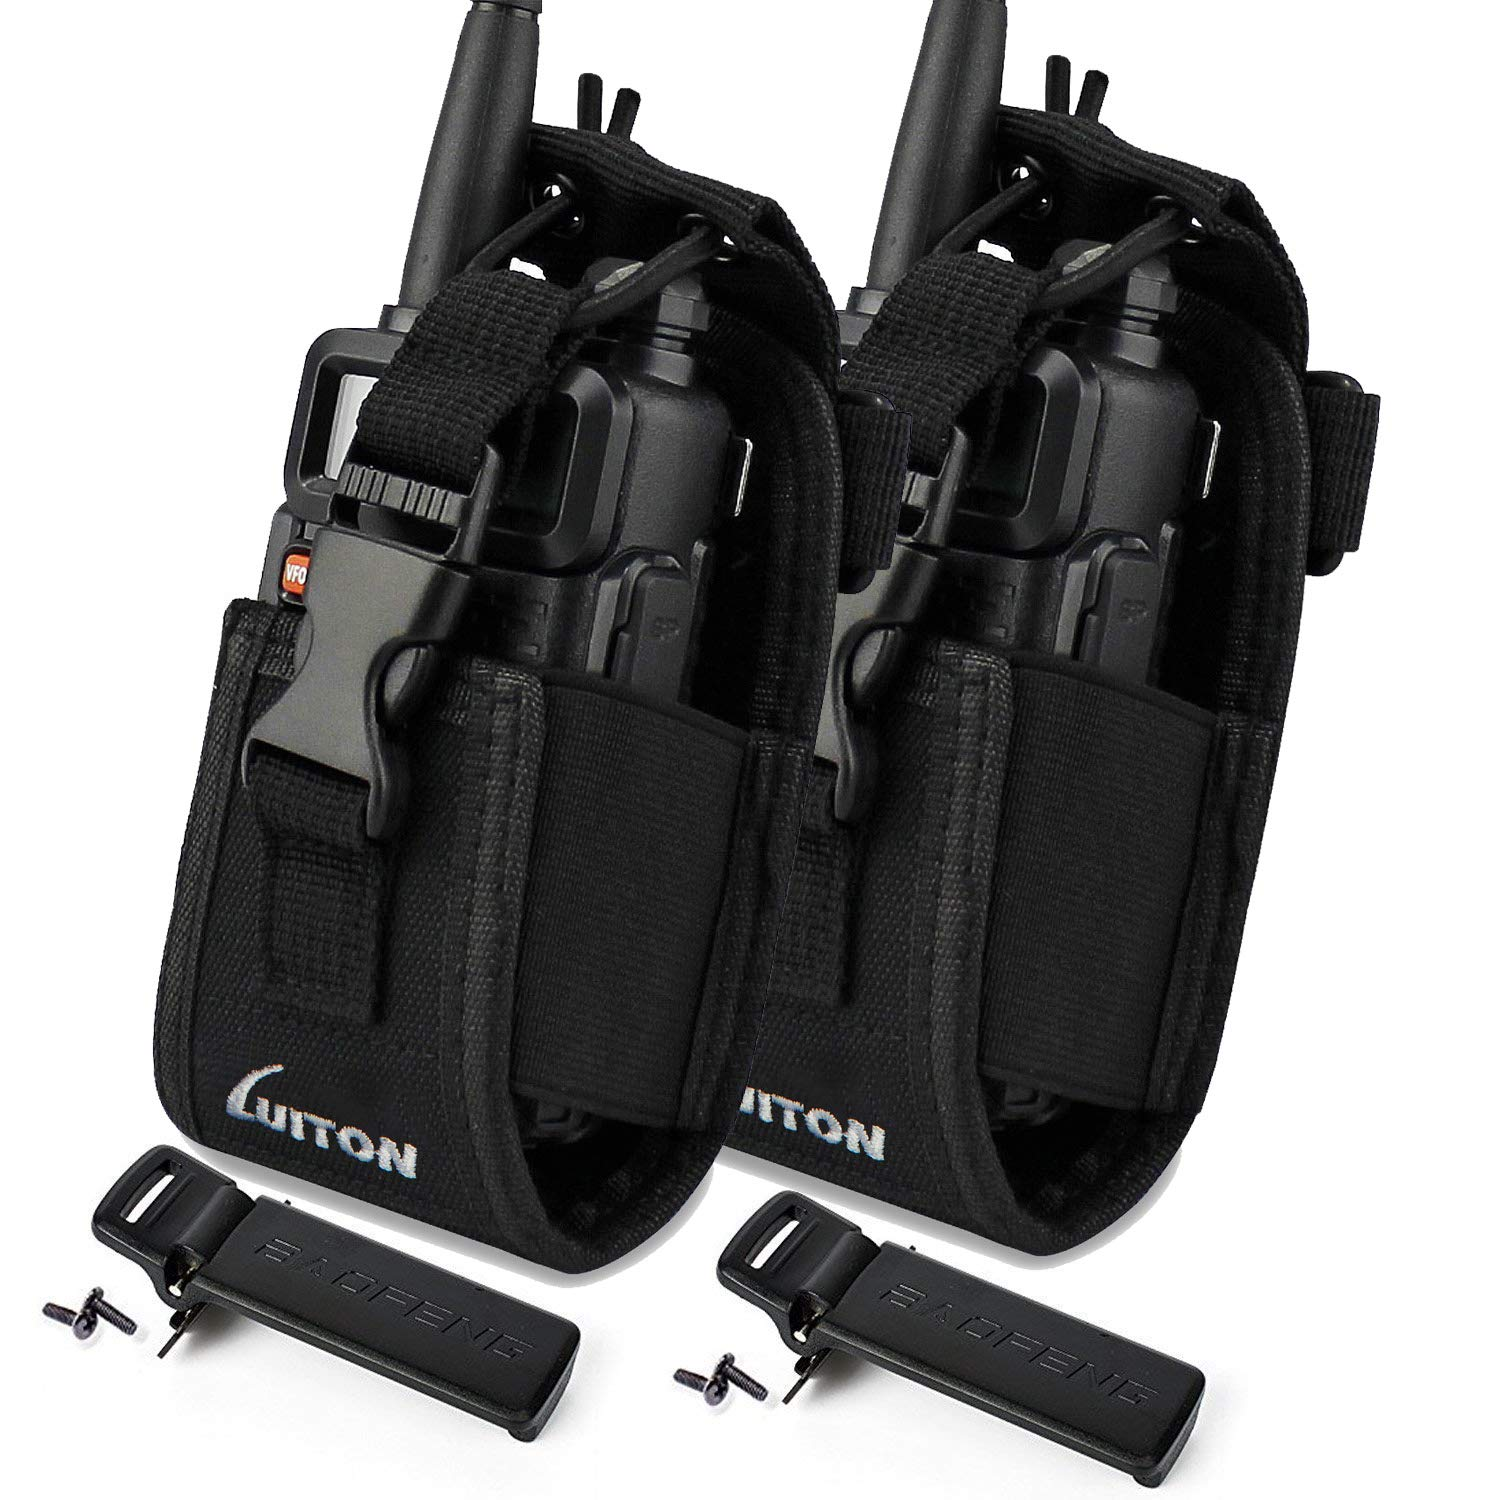 LUITON 3 in1 Multi-Function Radio Holder Holster Case Pouch Bag For GPS Compatible with Motorola baofeng UV5R UV82 UV5RA 888S Retevis H777 F8HP Two Way Radio Walkie Talkies (2Packs) with 2 UV-5R Clips |